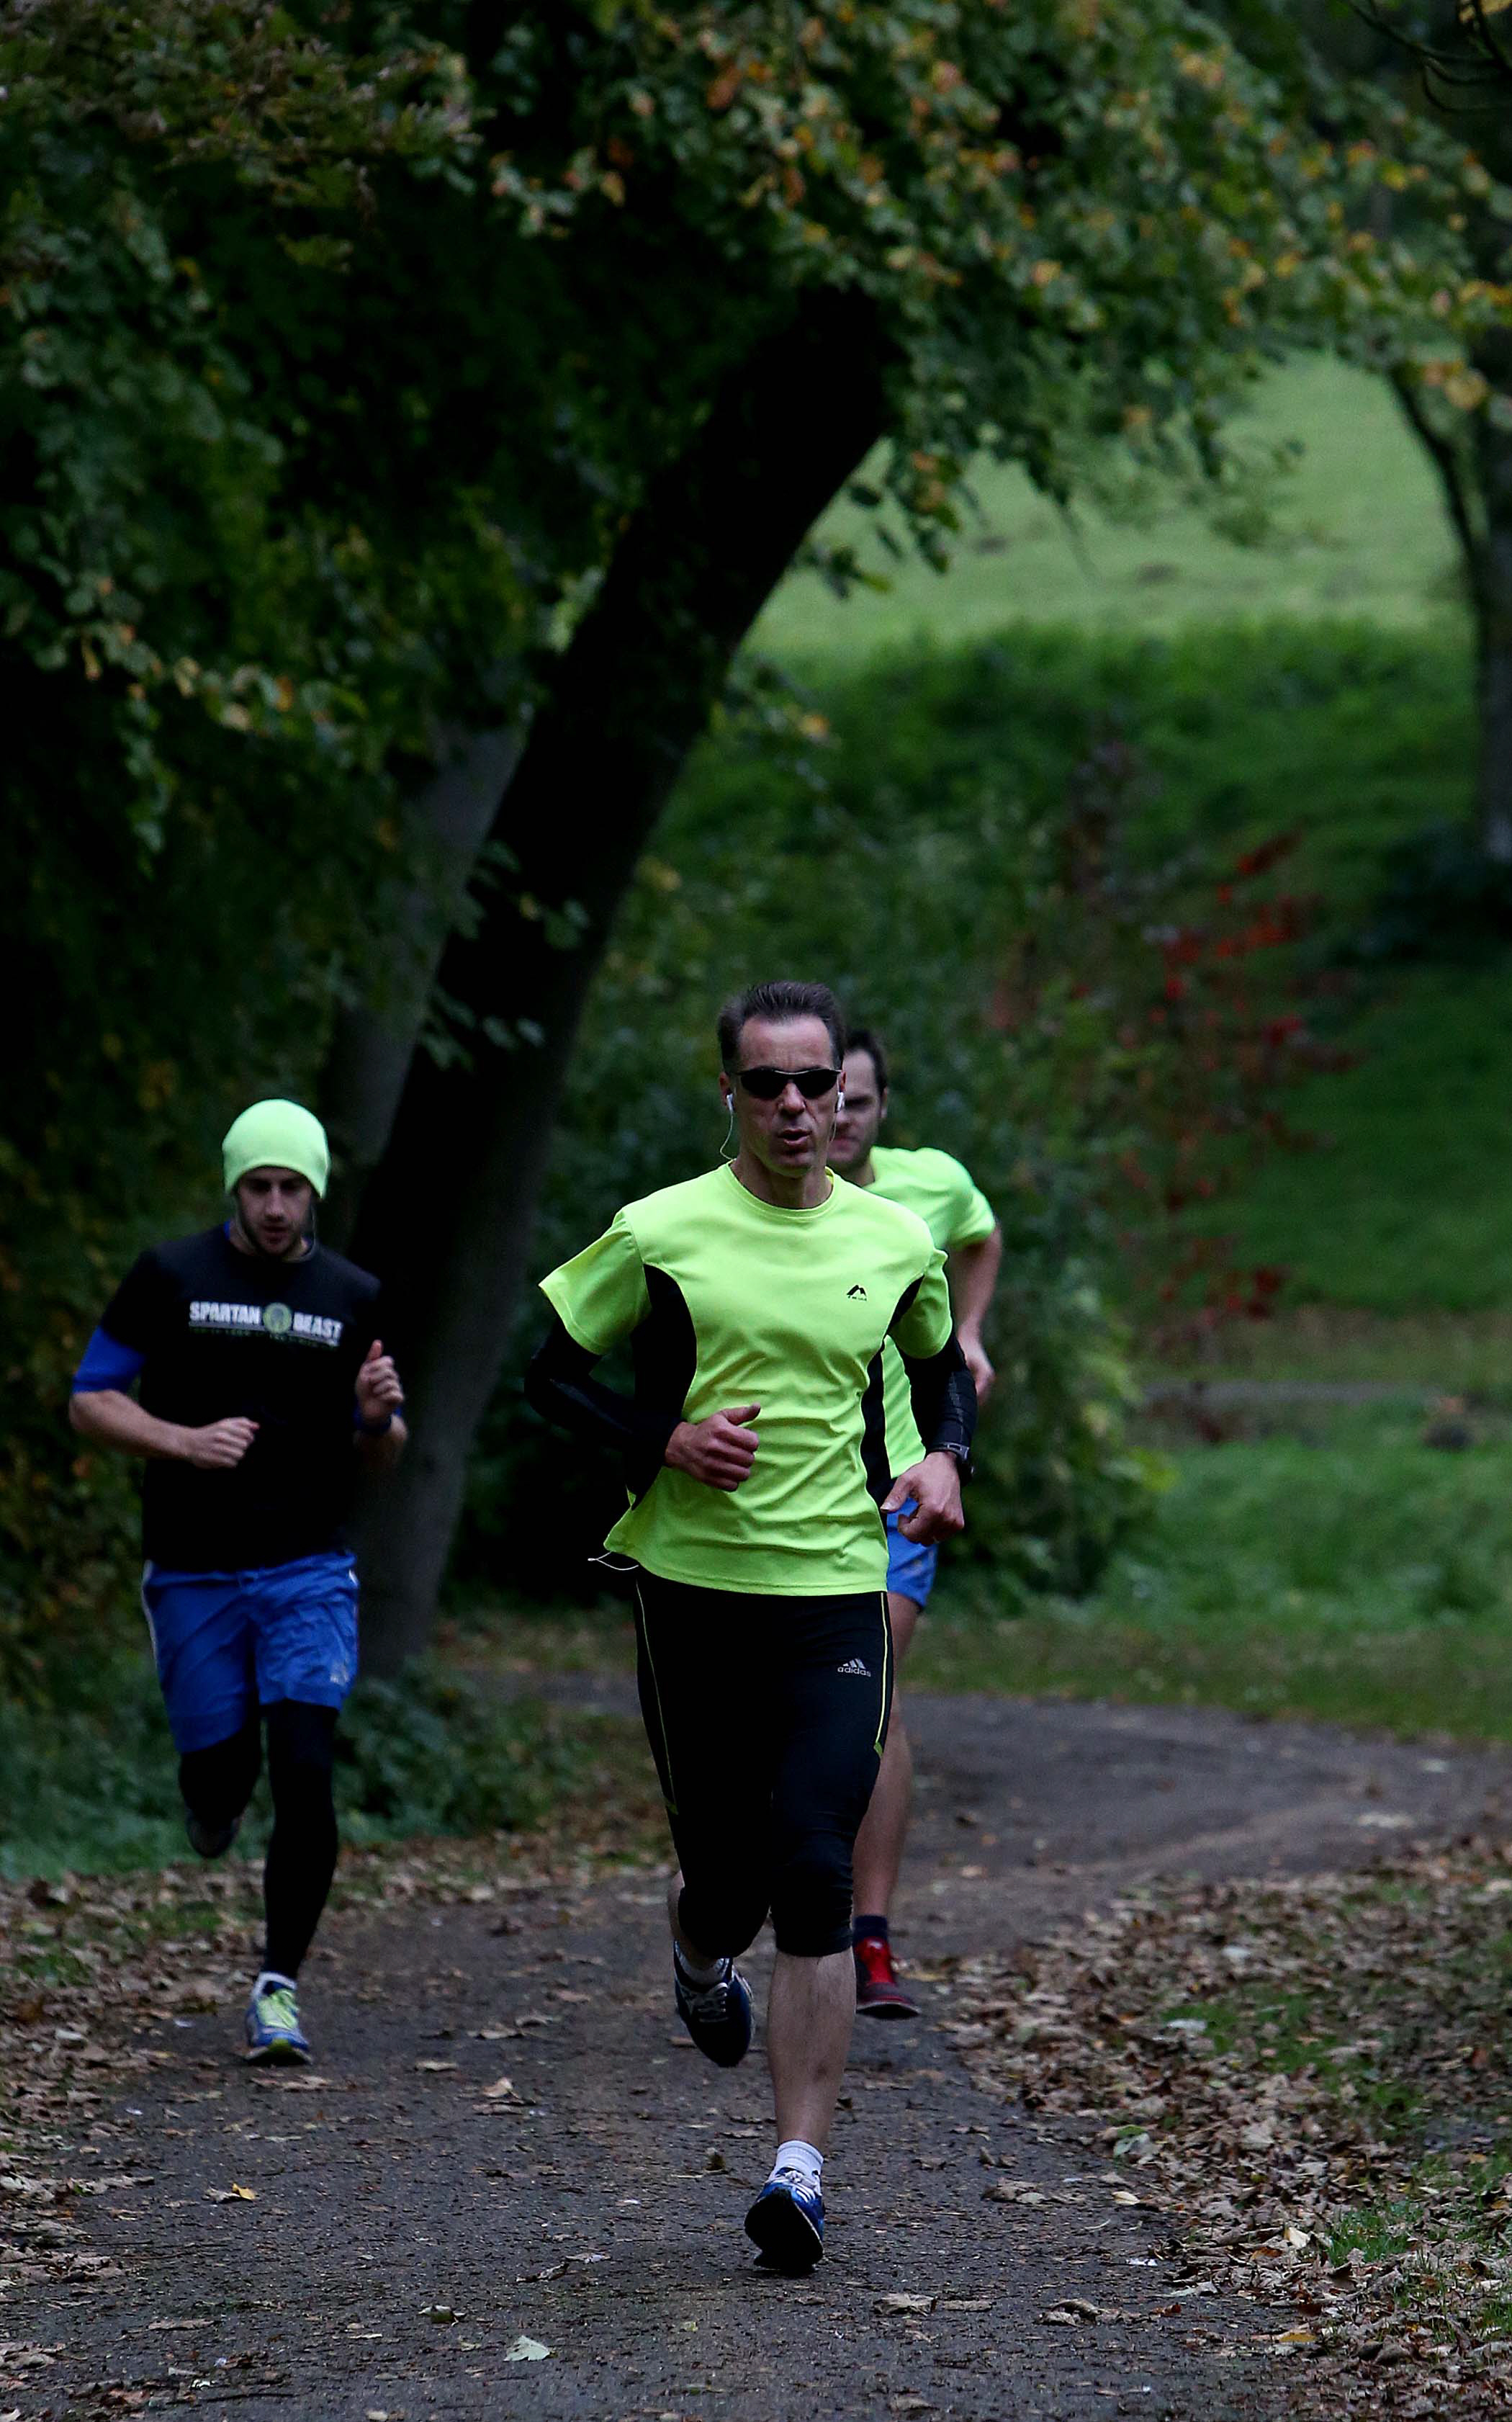 Durham County Council has launched 3-2-1 Run at Hardwick Park, near Sedgefield, in a bid to persuade more people to take up running